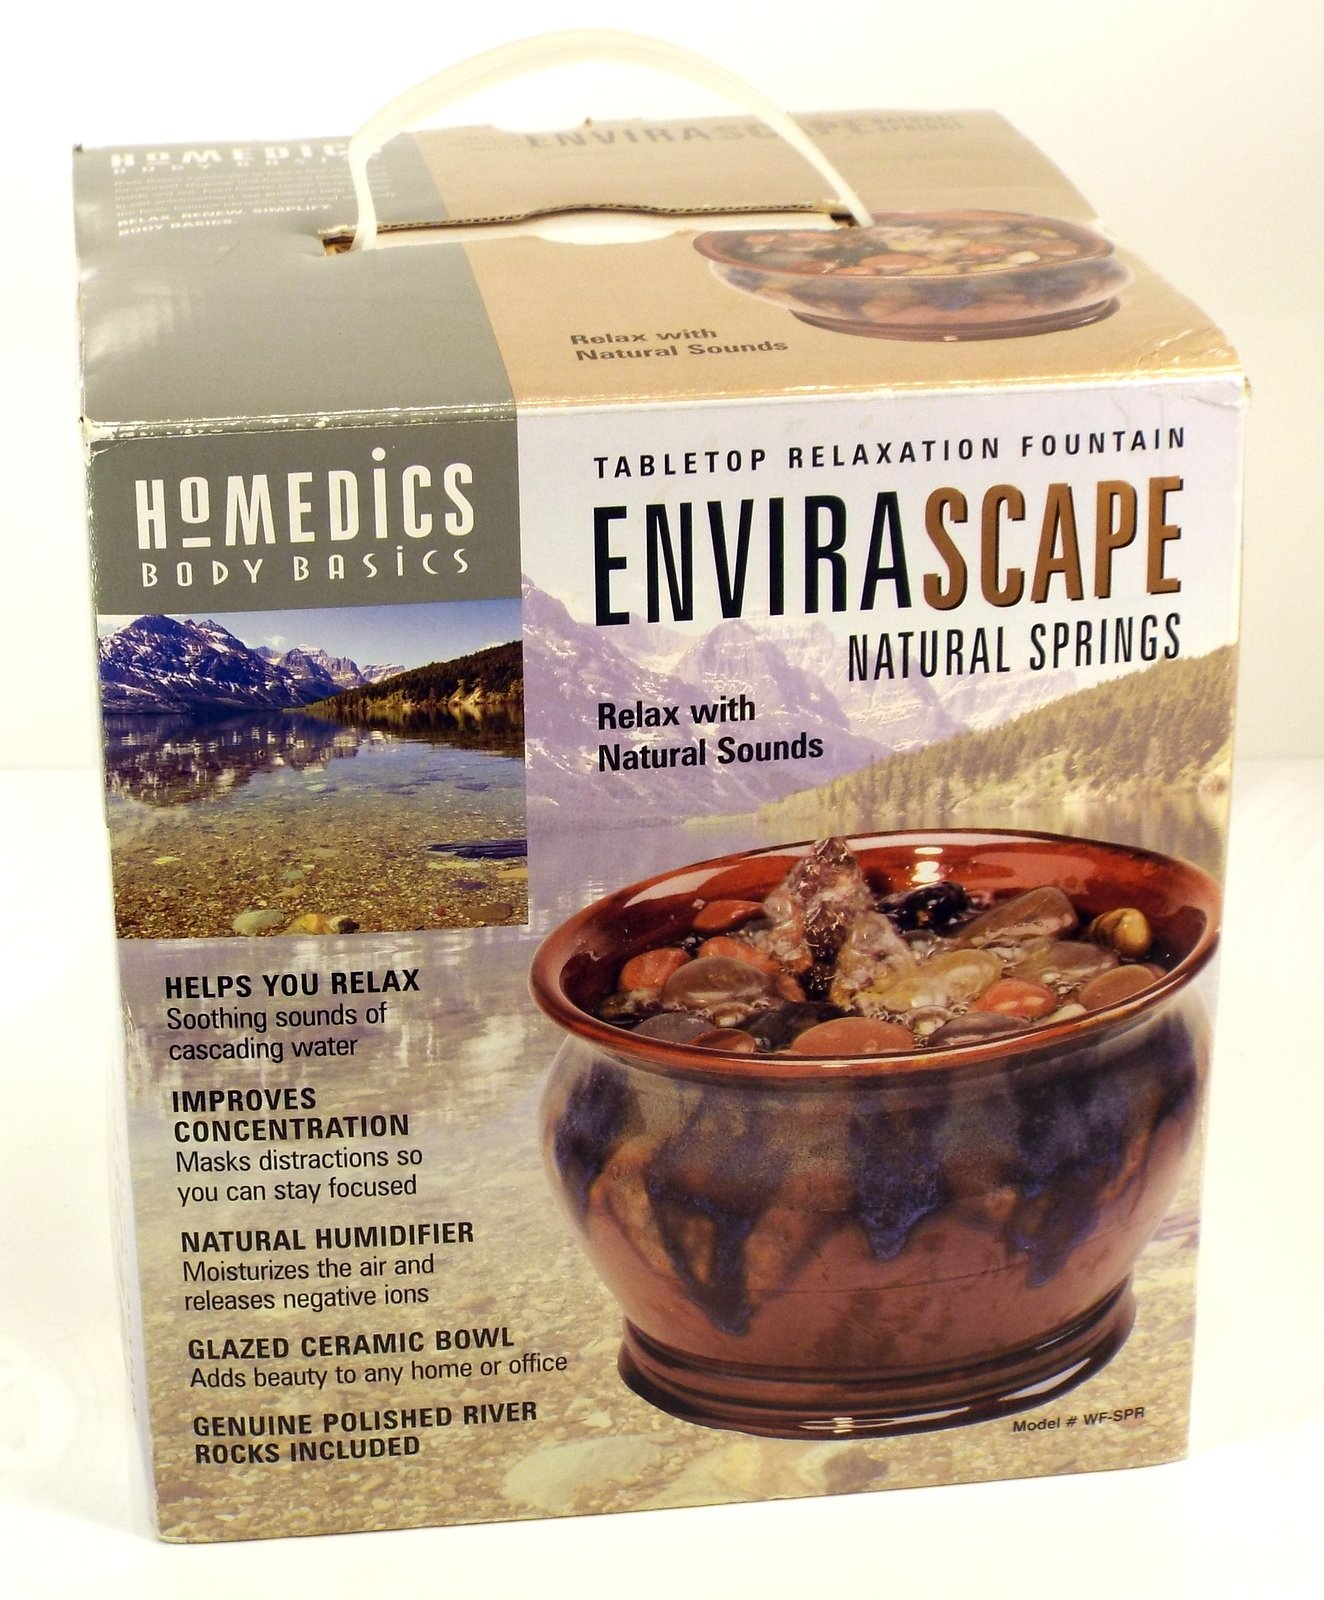 Homedics Envirascape Natural Springs Tabletop Relaxation Fountain